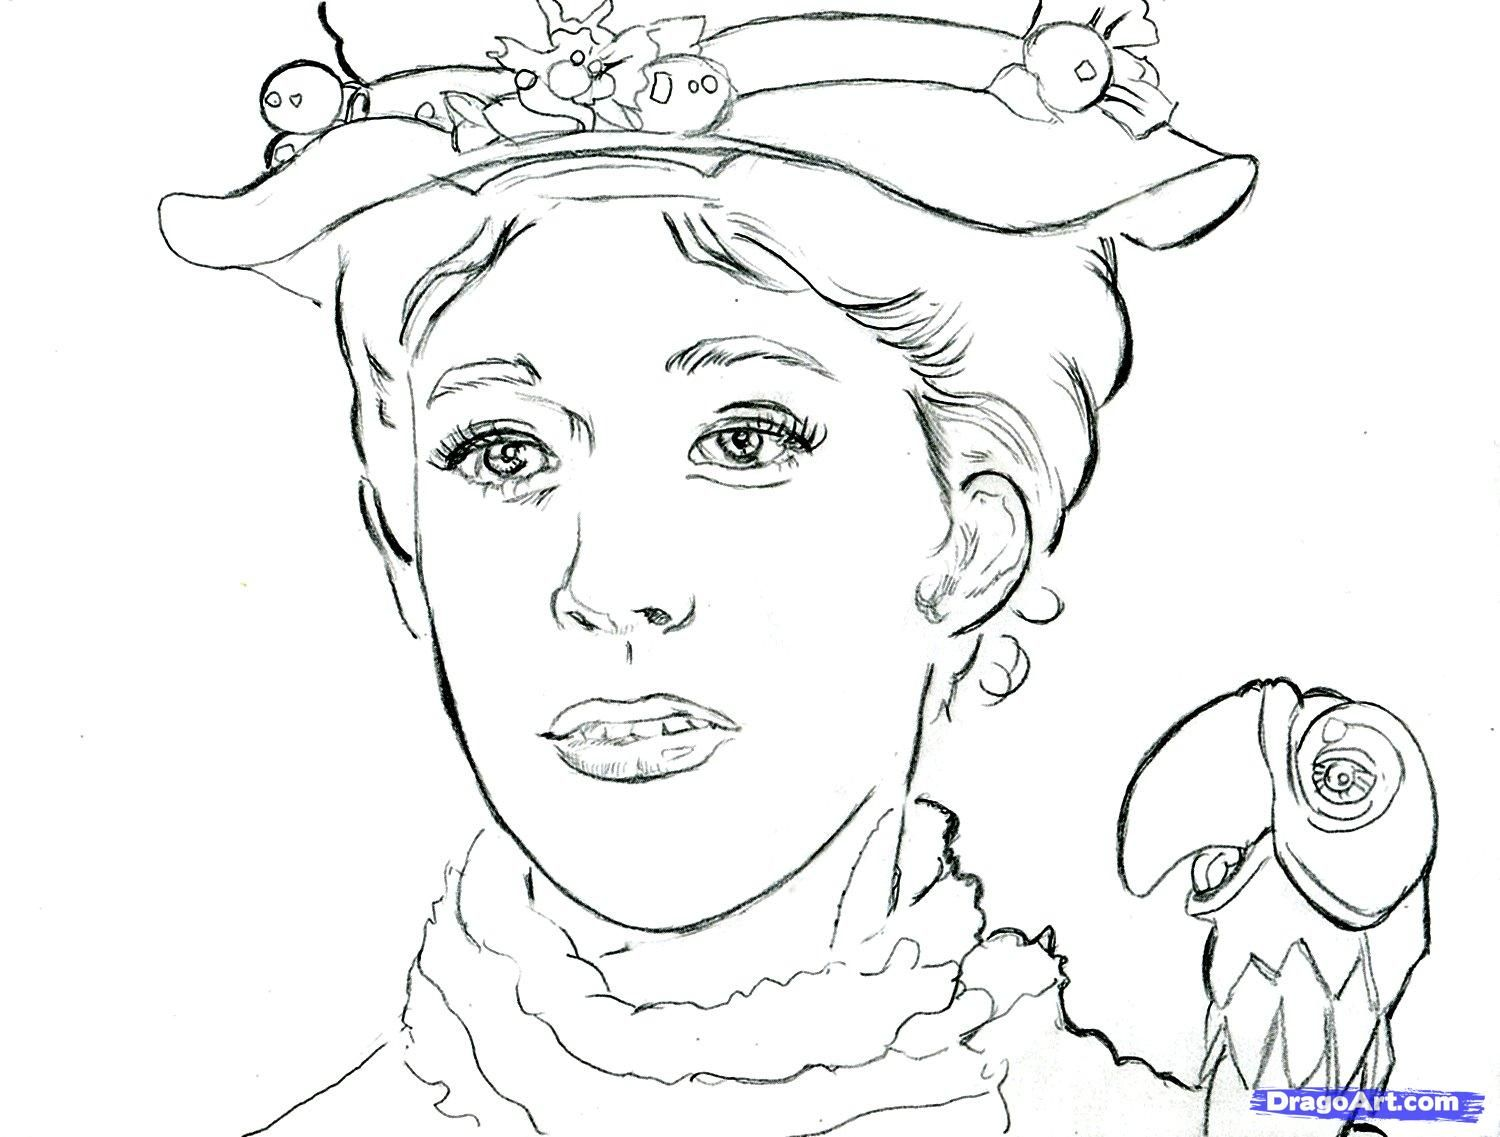 Colour in pages | Colouring Pages | Pinterest | Mary poppins and ...